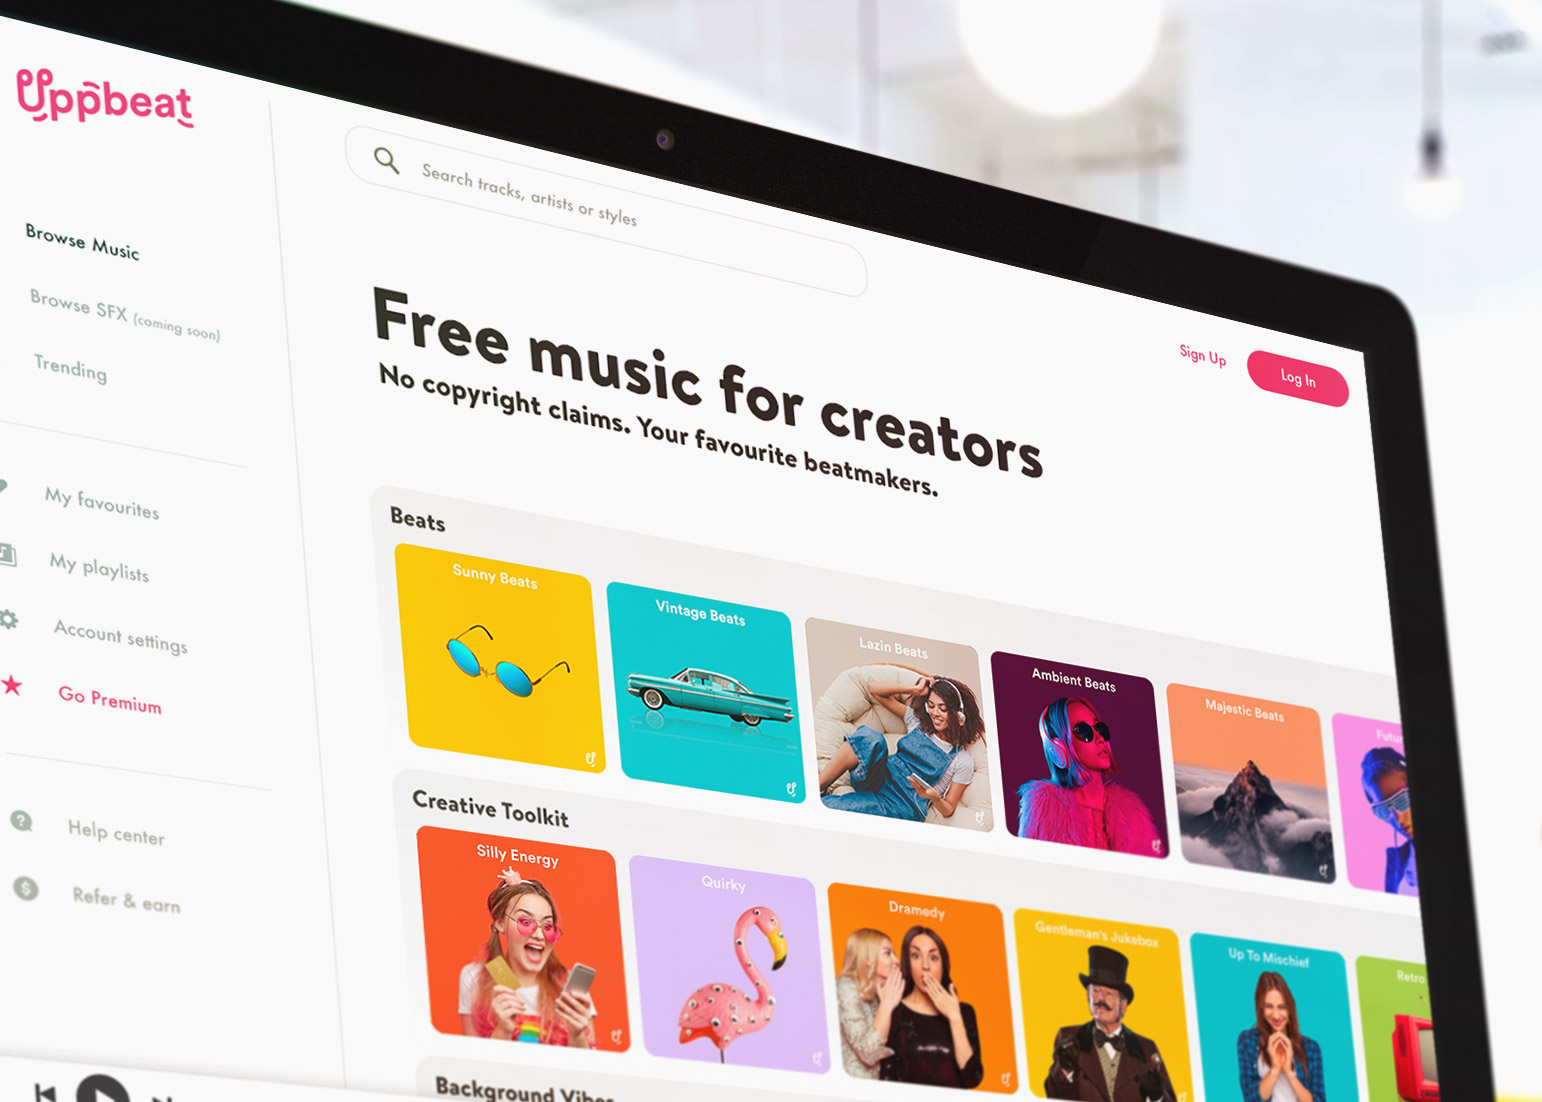 techcrunch.com - Sarah Perez - Uppbeat launches a freemium music platform aimed at YouTubers